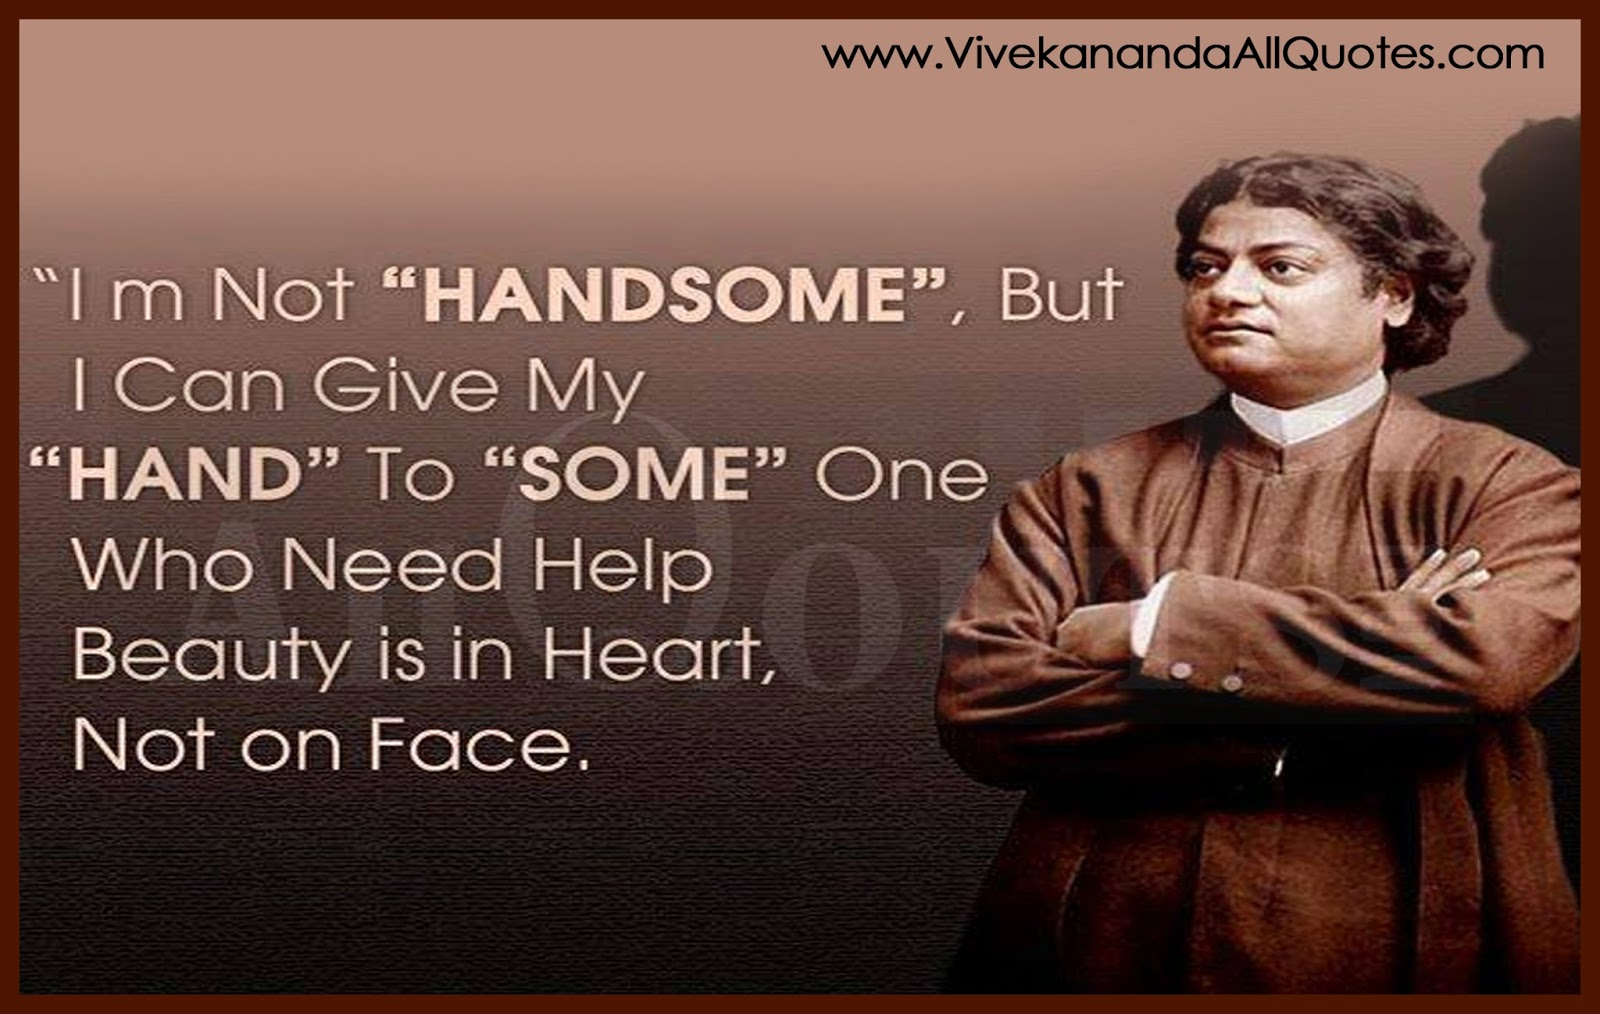 vivekananda best quotes in english pictures www